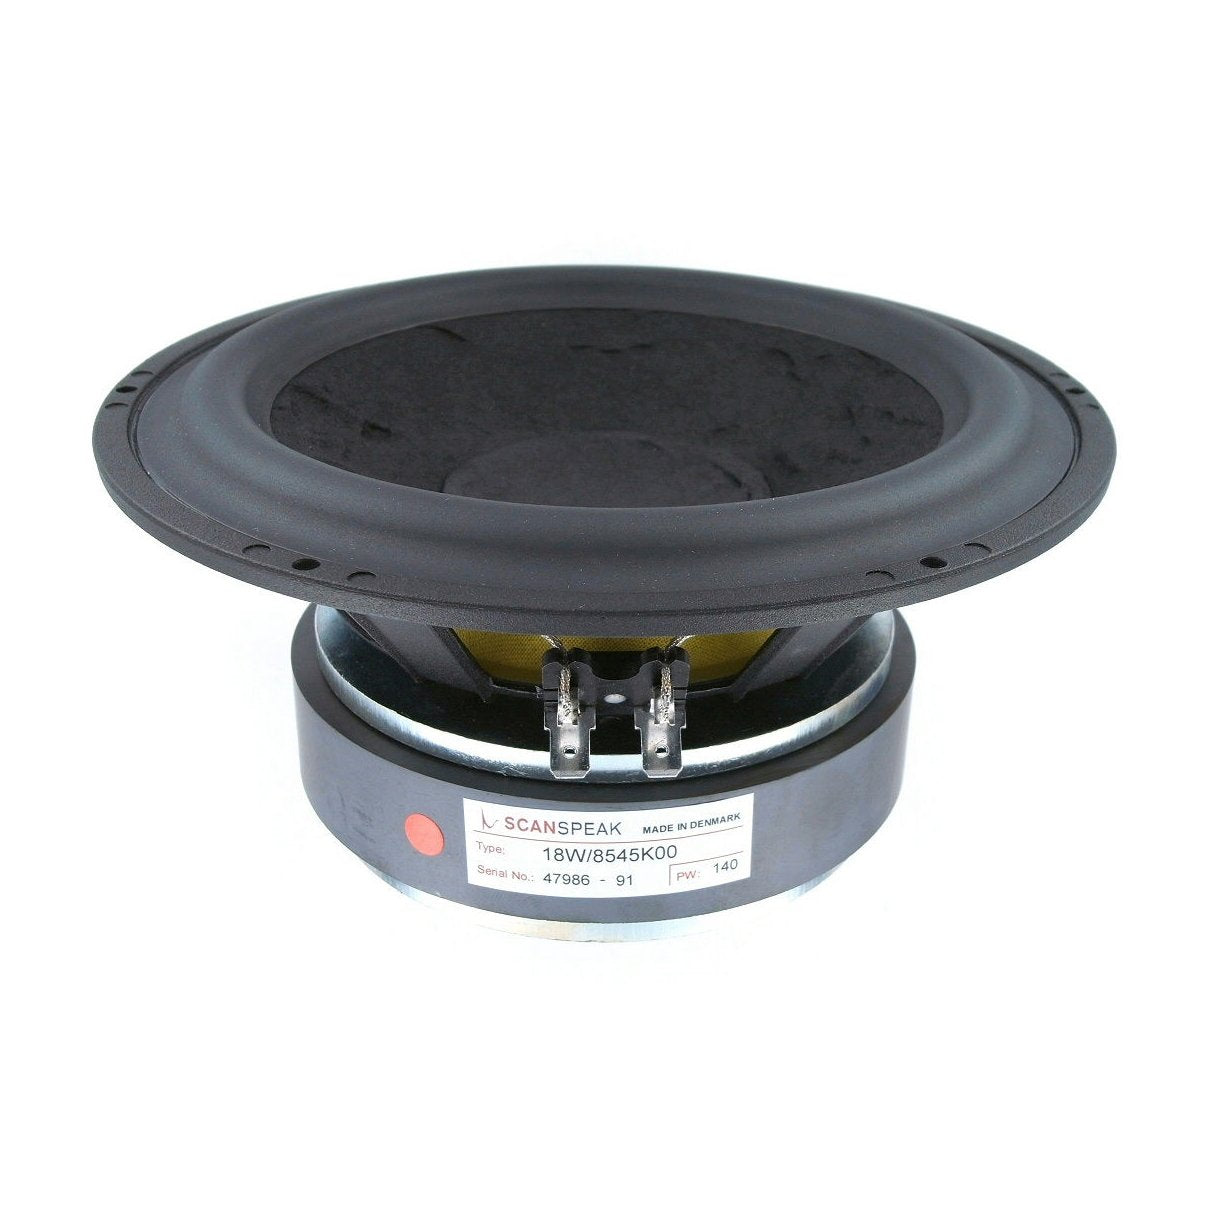 Scanspeak Classic 18W/8545K00 Midwoofer - Willys-Hifi Ltd